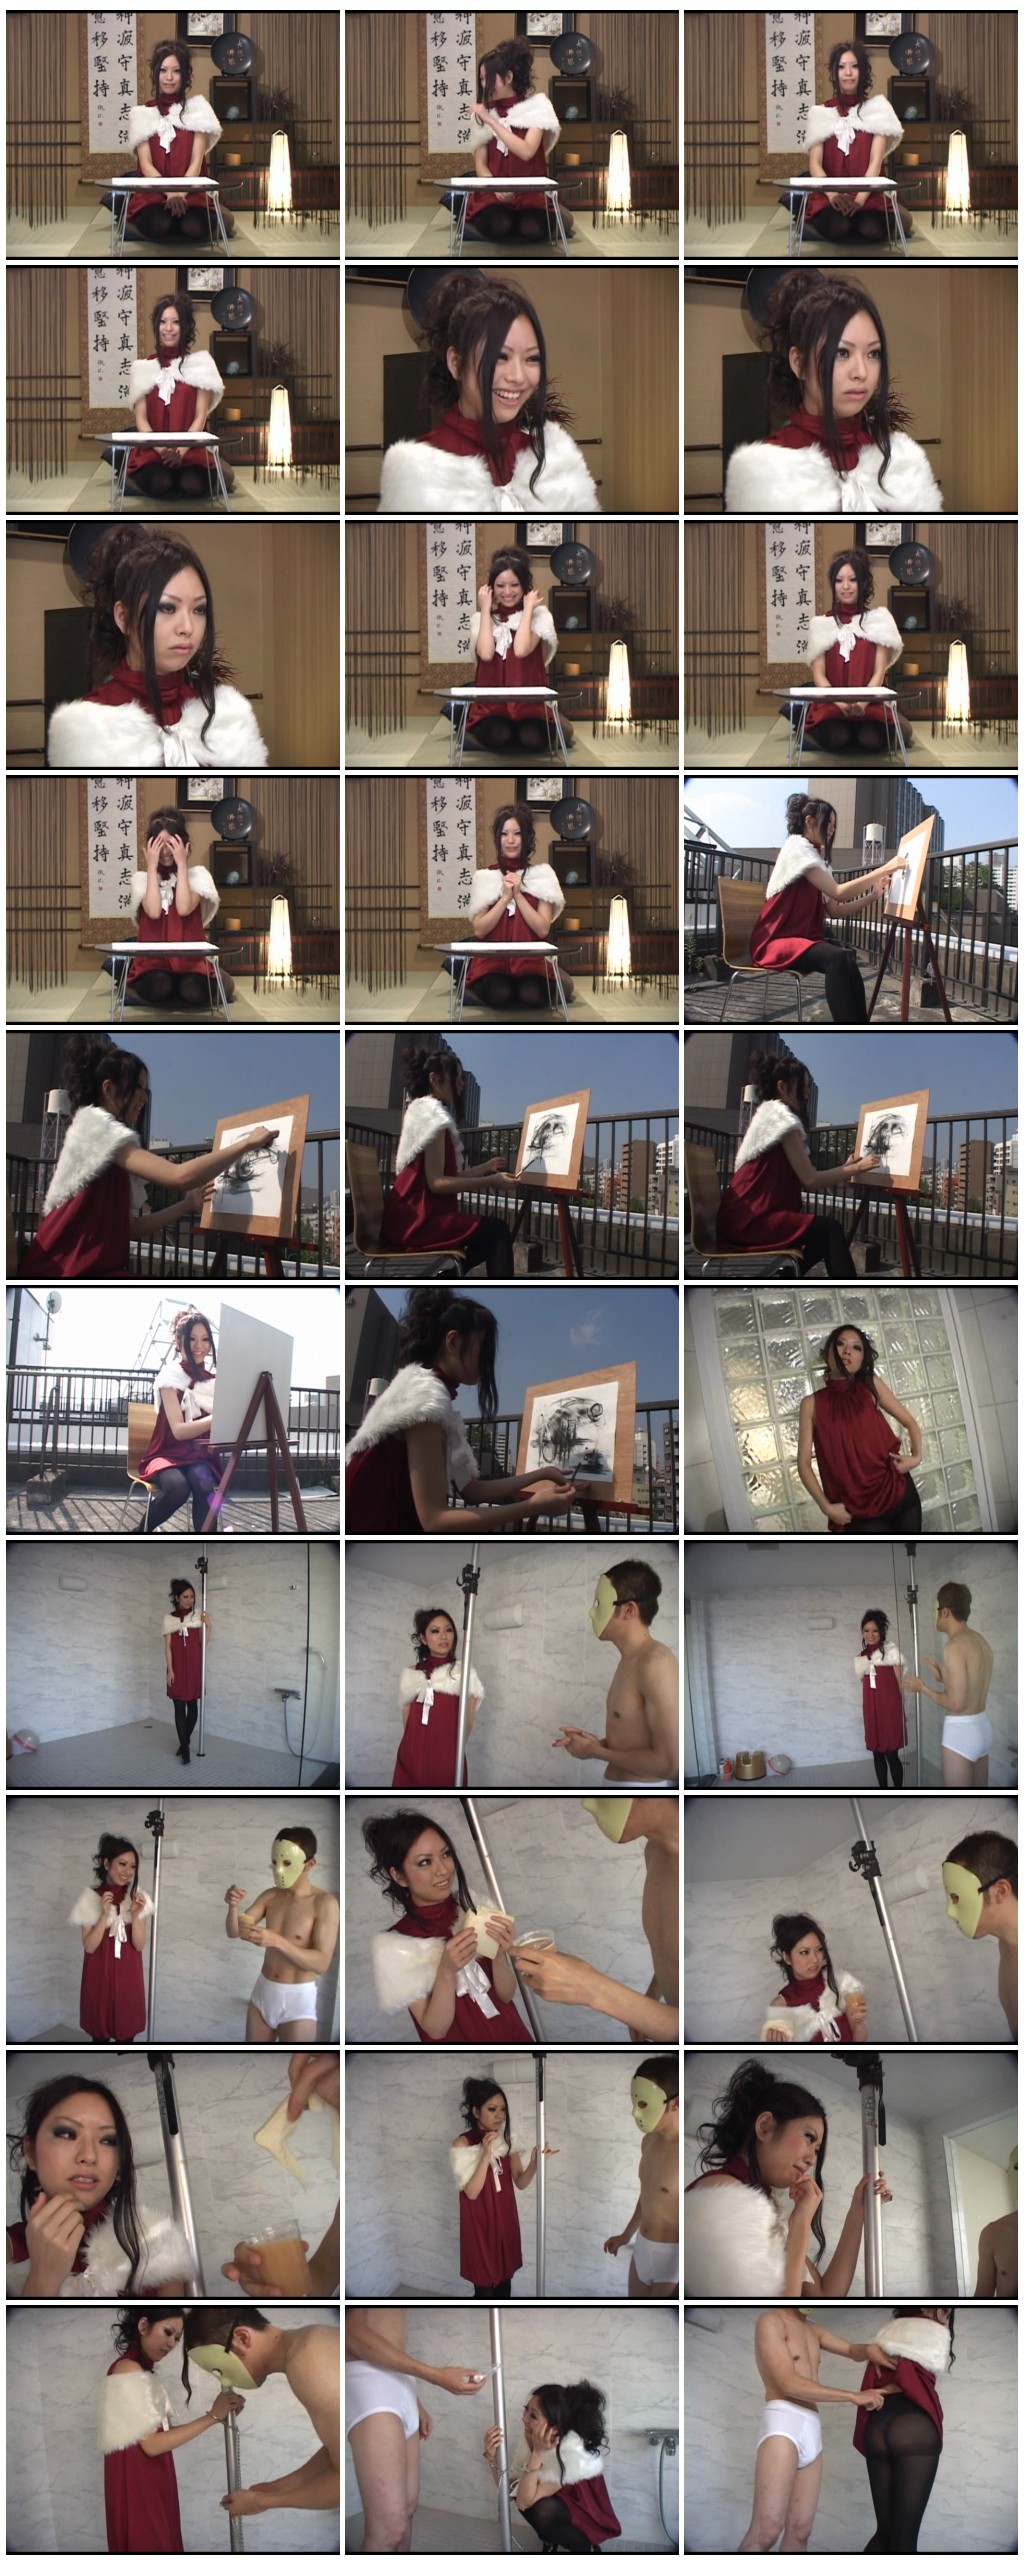 COWD-016 A Precious Shit People 16 [Scat sex, shit sex,Oral-Anal Sex, Smearing,Sex Toys, Masturbation, shit,  Toilet Slavery, Rape, Humiliation, Group Sex]